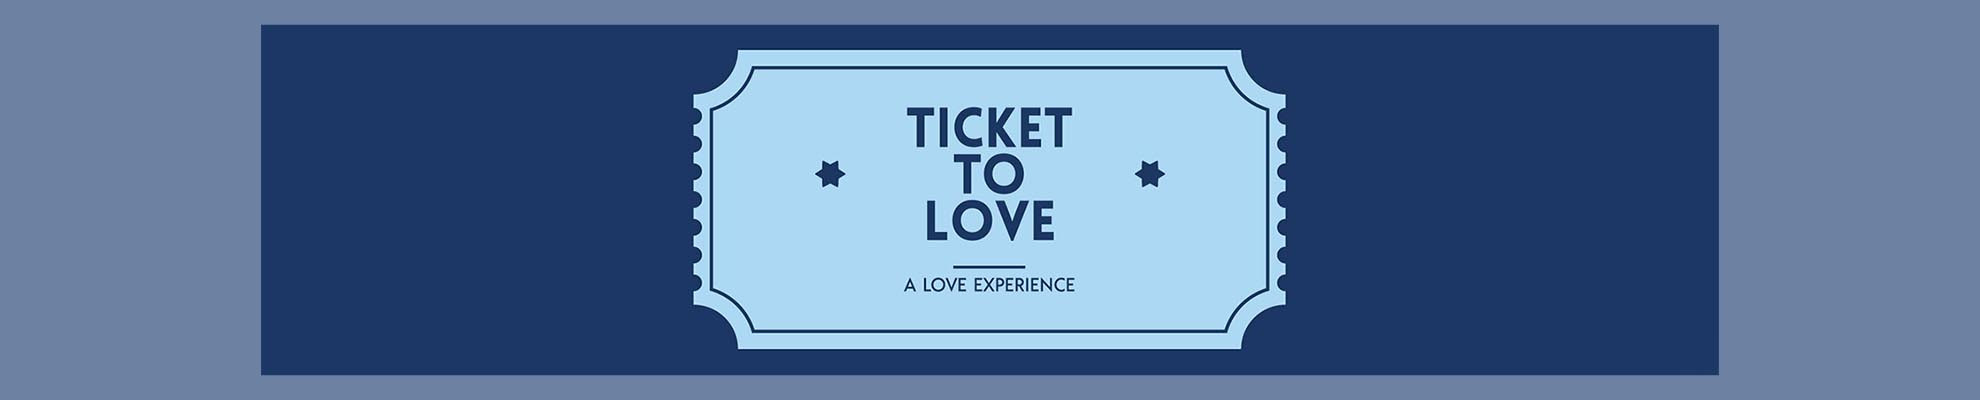 IBSA Ticket to love